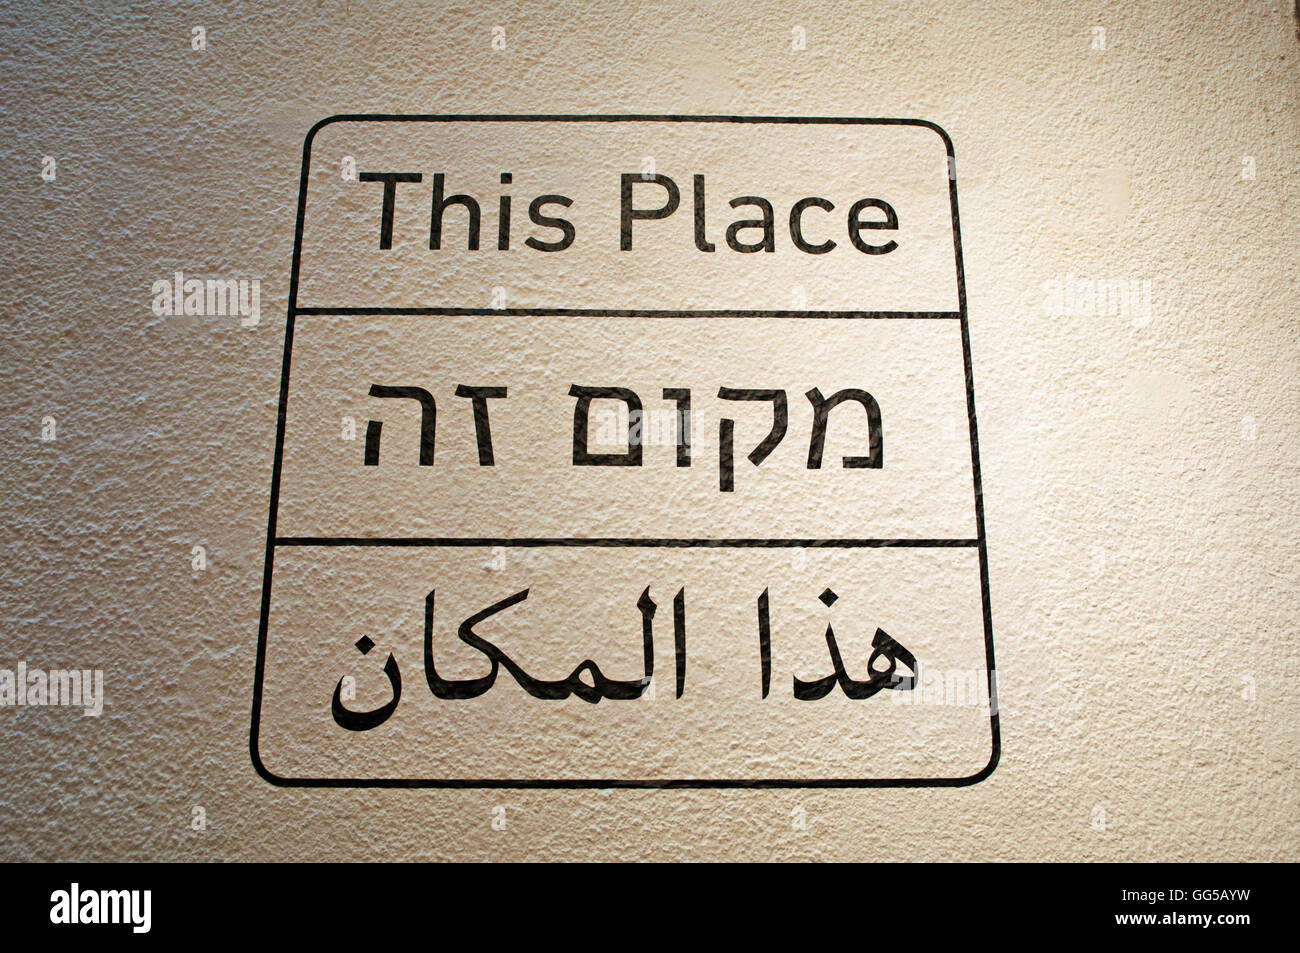 Israel, Middle East: the inscription This Place in English, Hebrew and Arab at the entrance of the Tel Aviv Museum - Stock Image